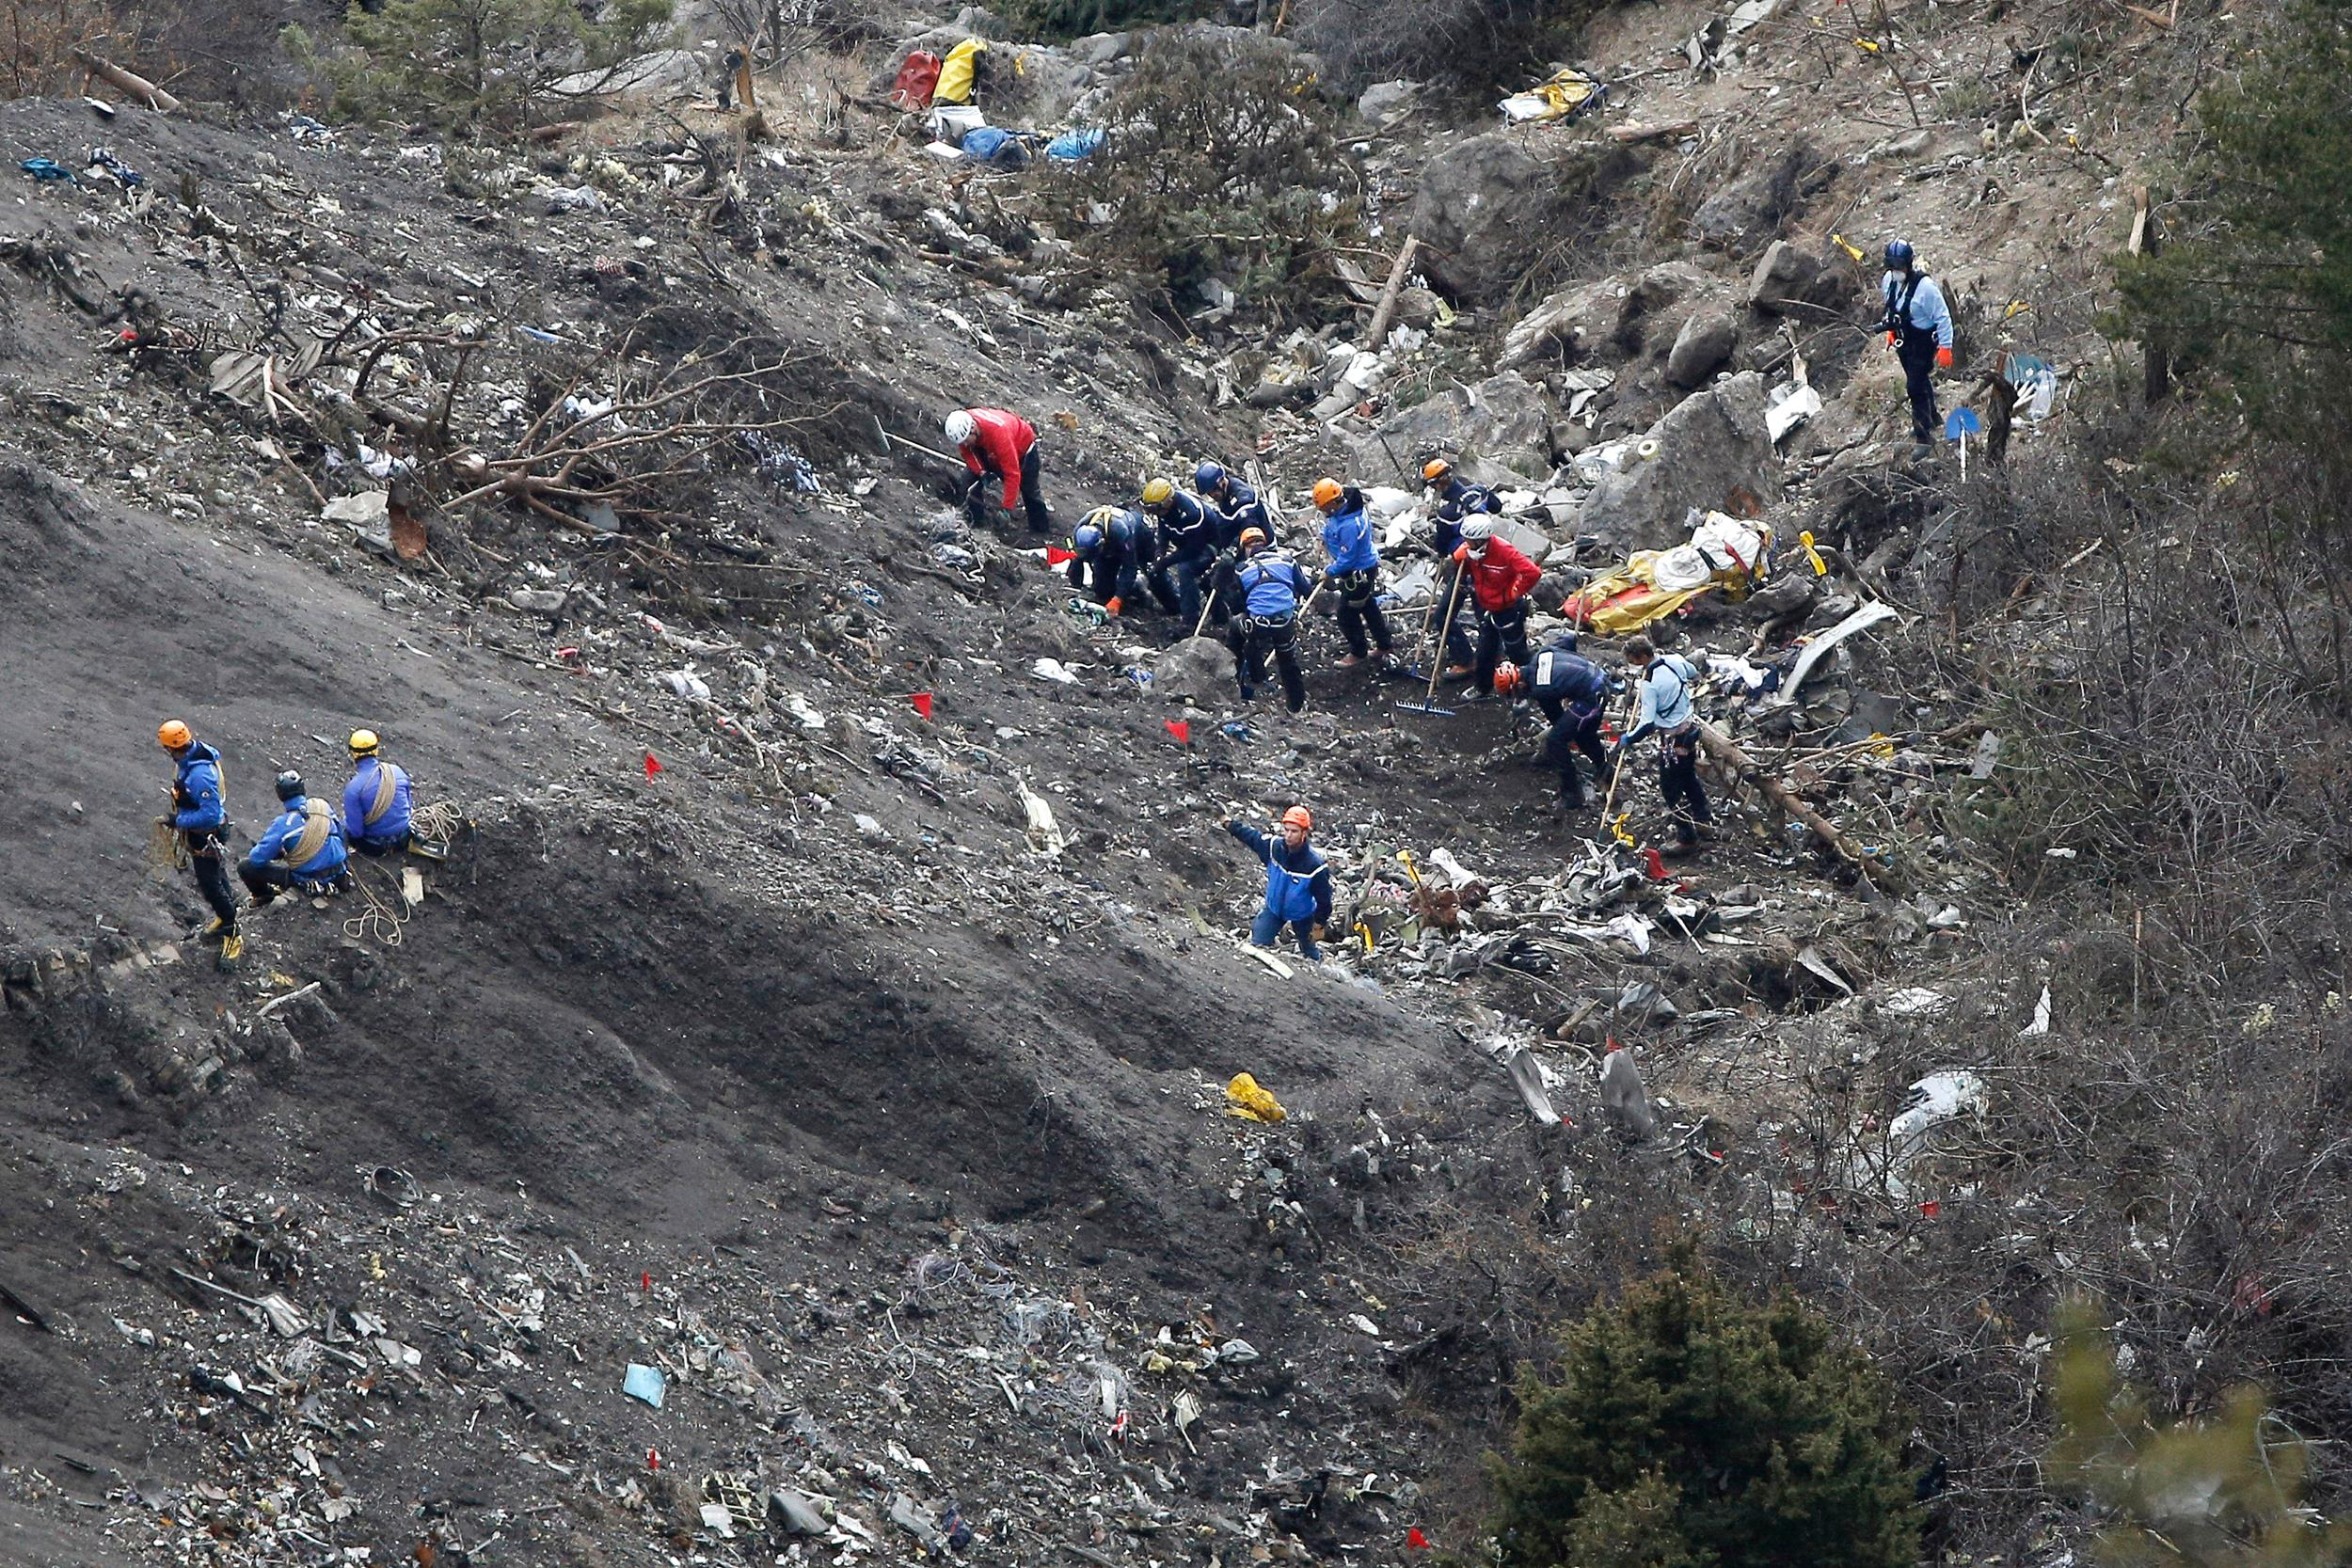 Airlines Adopt Two-in-the-Cockpit Rule After Germanwings Crash.